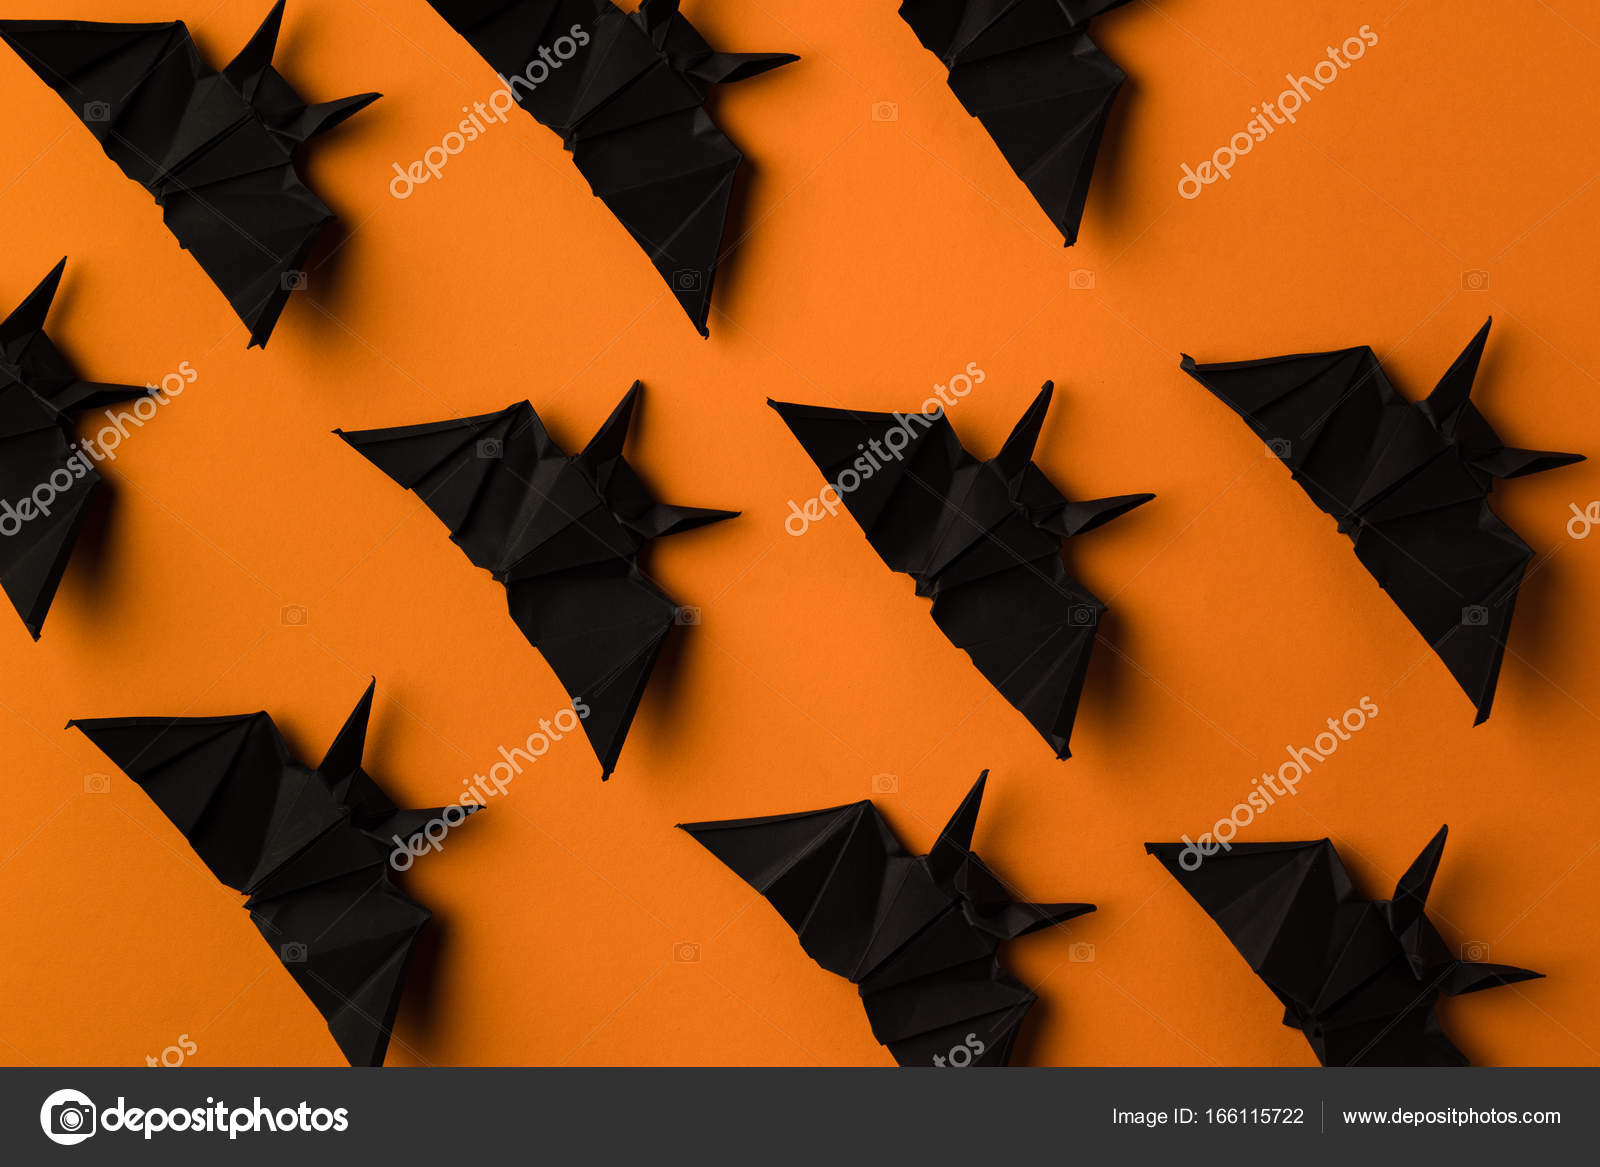 Texture with halloween origami bats stock photo antonmatyukha texture with halloween origami bats stock photo jeuxipadfo Gallery